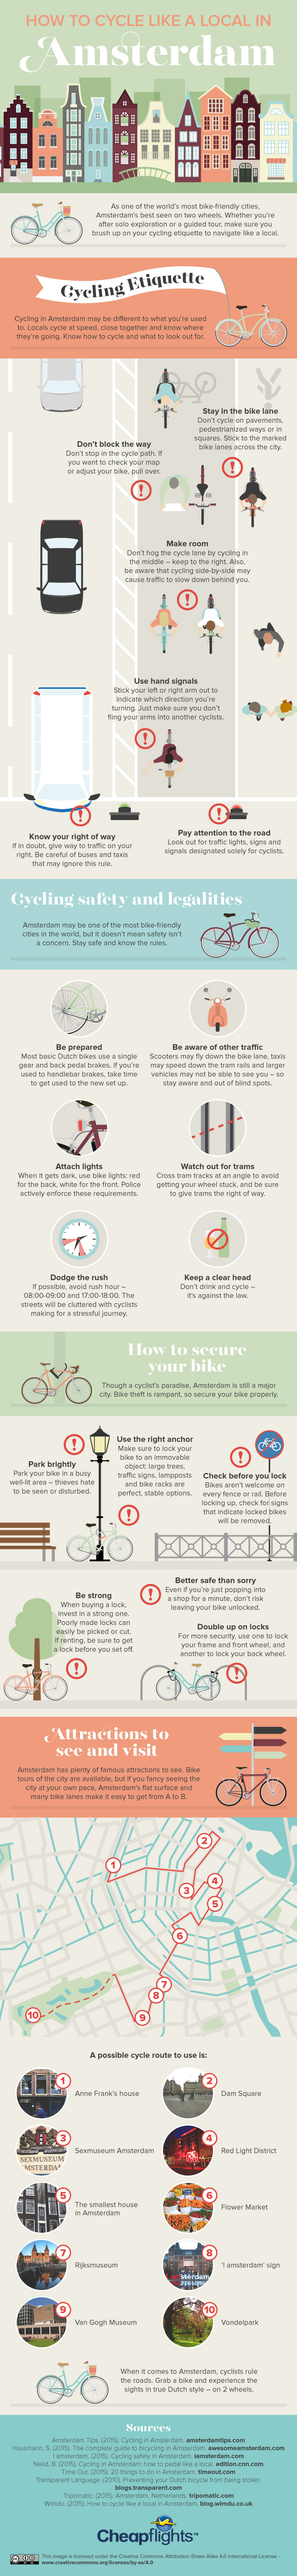 how-to-cycle-like-a-local-in-amsterdam